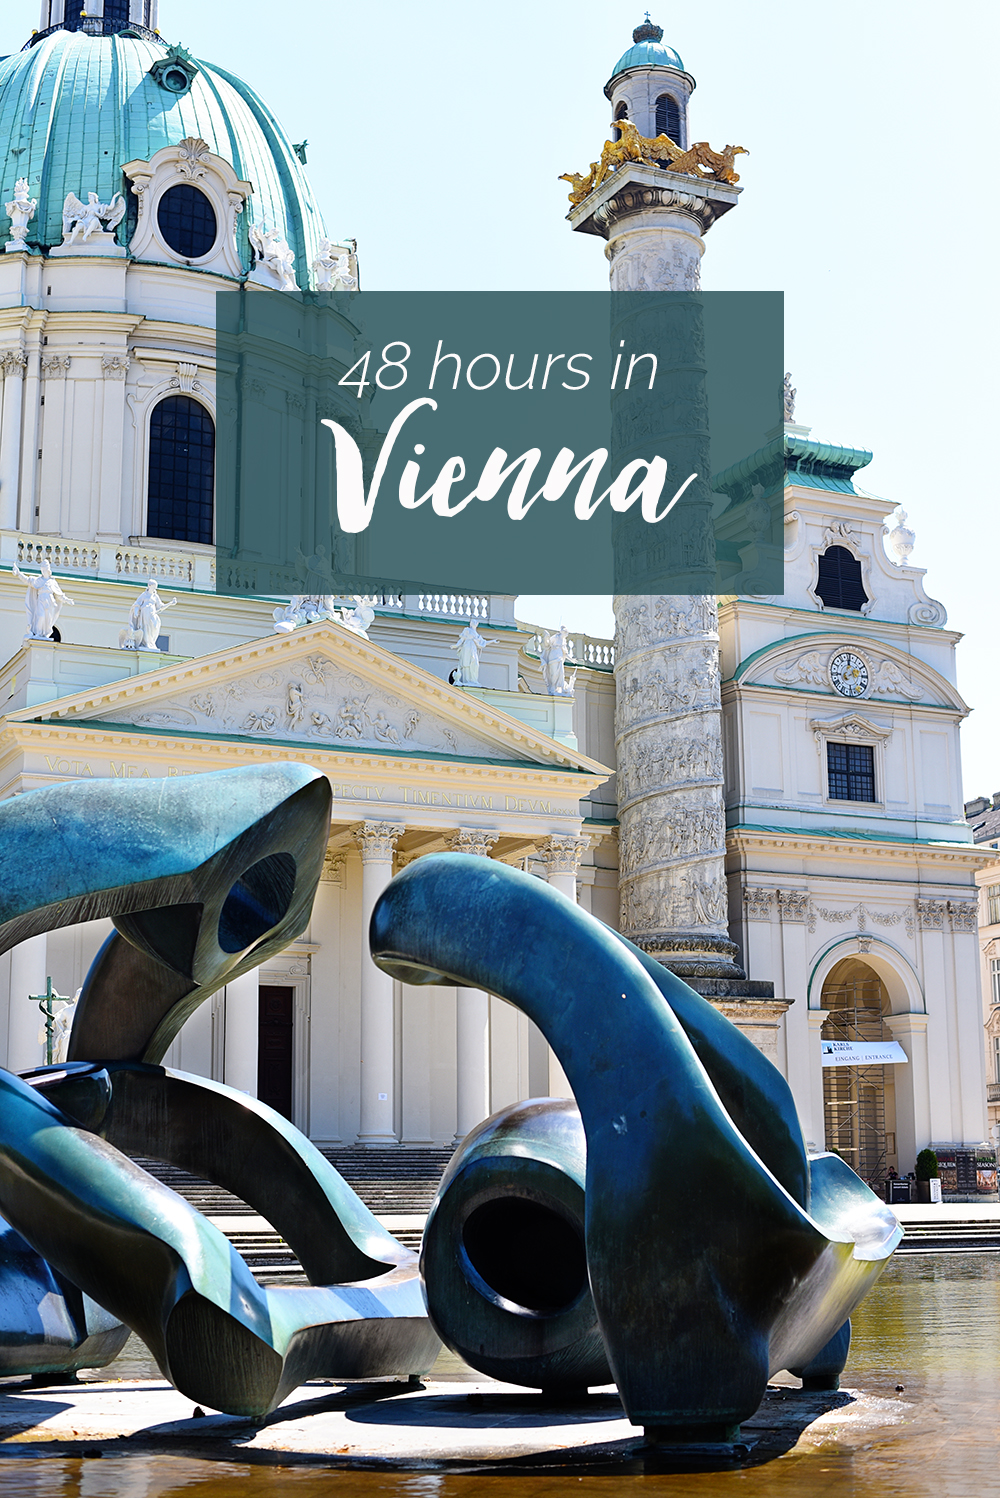 The Best of Vienna in 48 Hours: a VERY detailed travelogue of our 2 day stay in Vienna, including travel tips, restaurant suggestions, and more